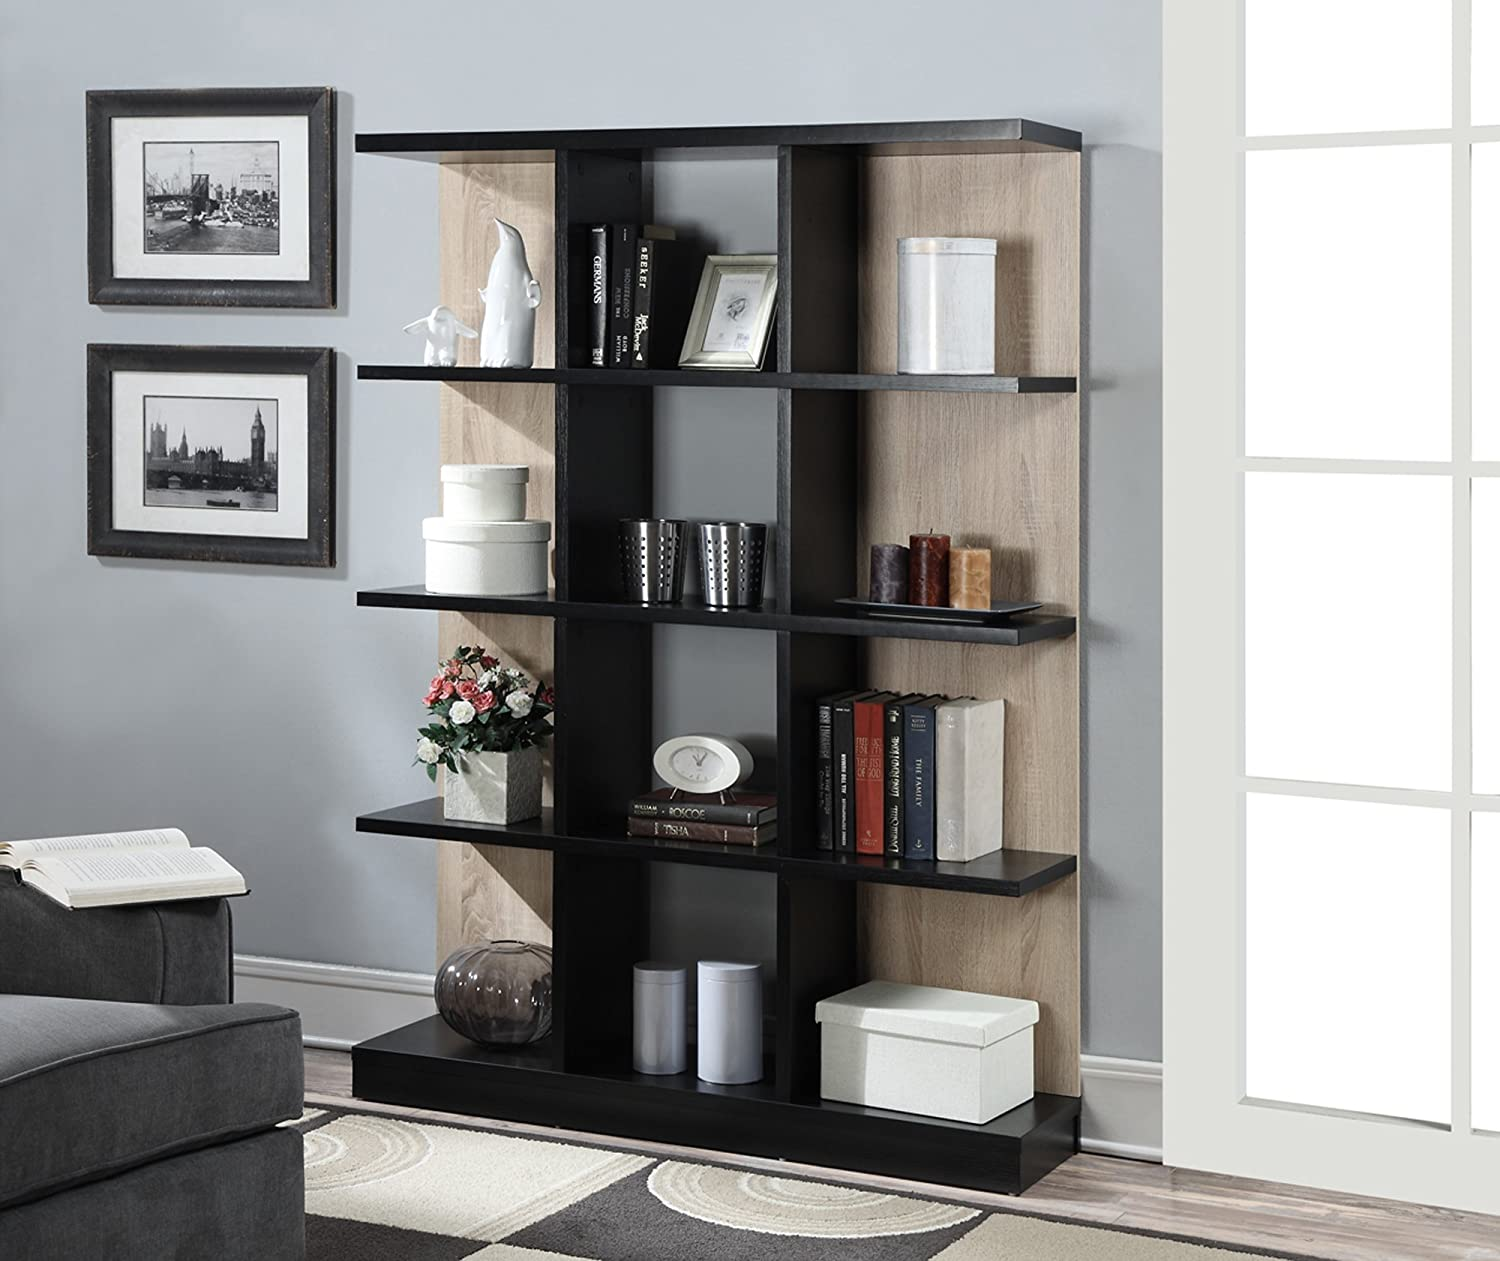 Amazon.com: Convenience Concepts Key West 4-Tier Bookcase, Weathered White  and Black: Kitchen & Dining - Amazon.com: Convenience Concepts Key West 4-Tier Bookcase